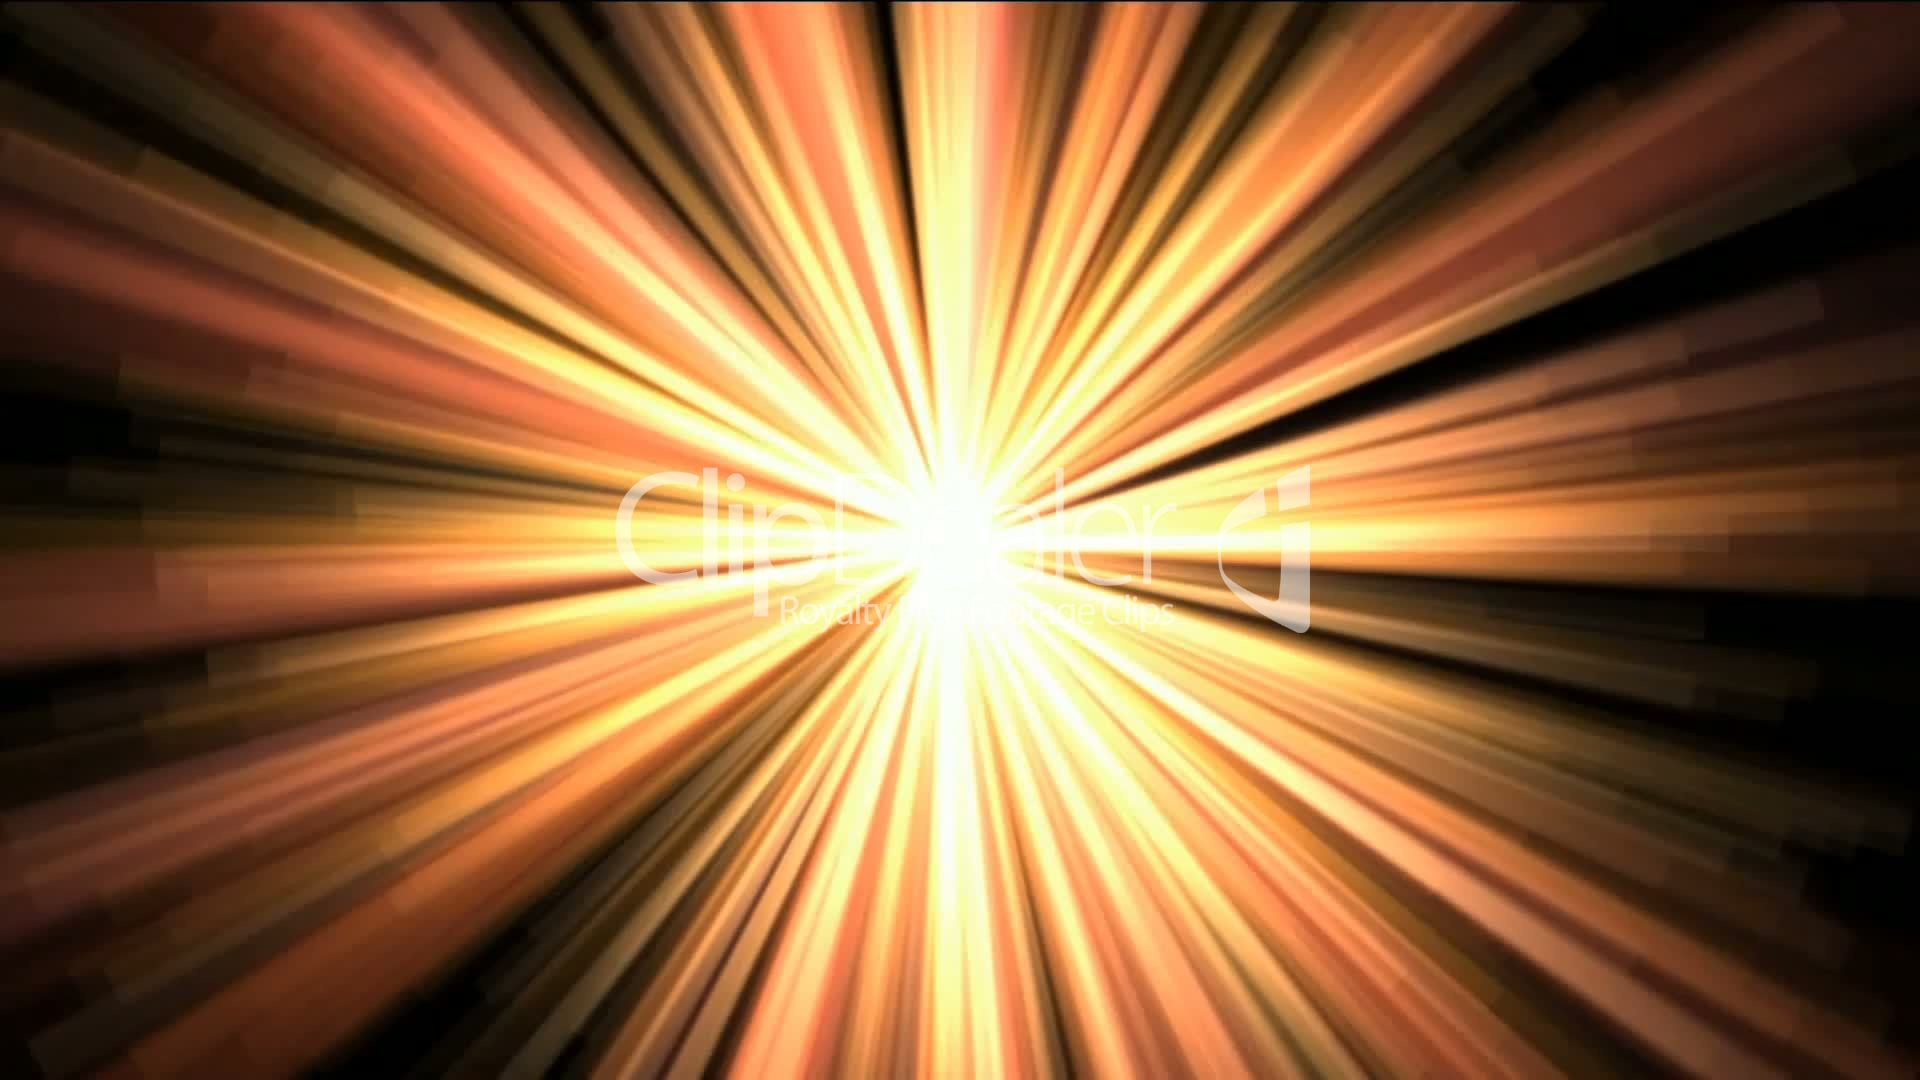 Gold Rays Light Flare Sunlight Royalty Free Video And